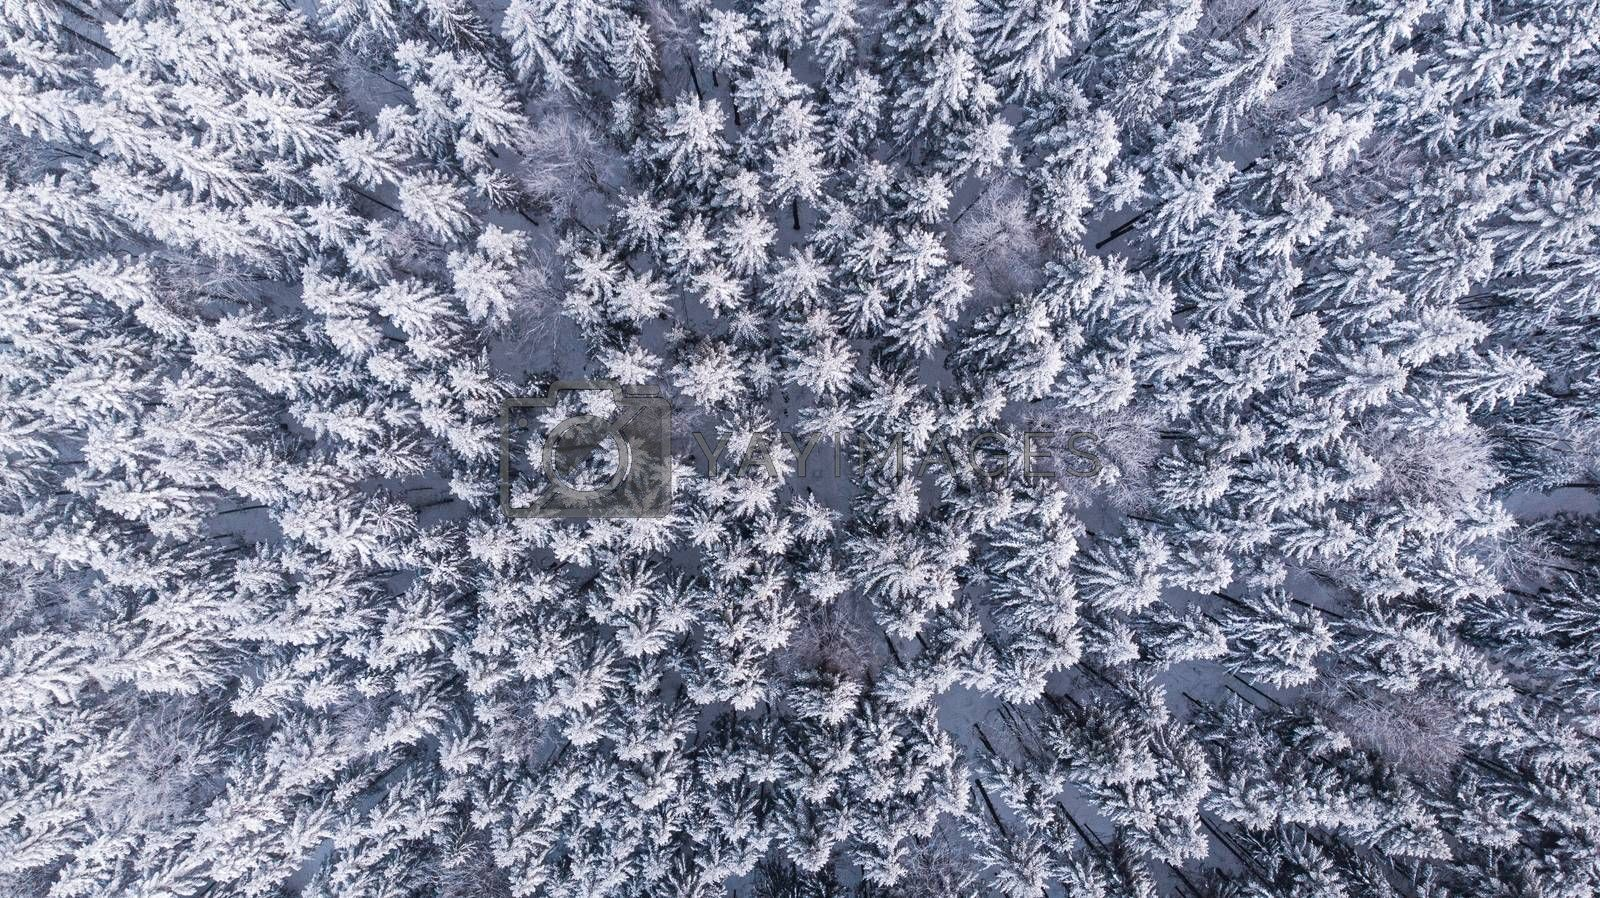 Winter Woderland Snowy Pine Trees in Wild Woodland. Aerial Top D by merc67